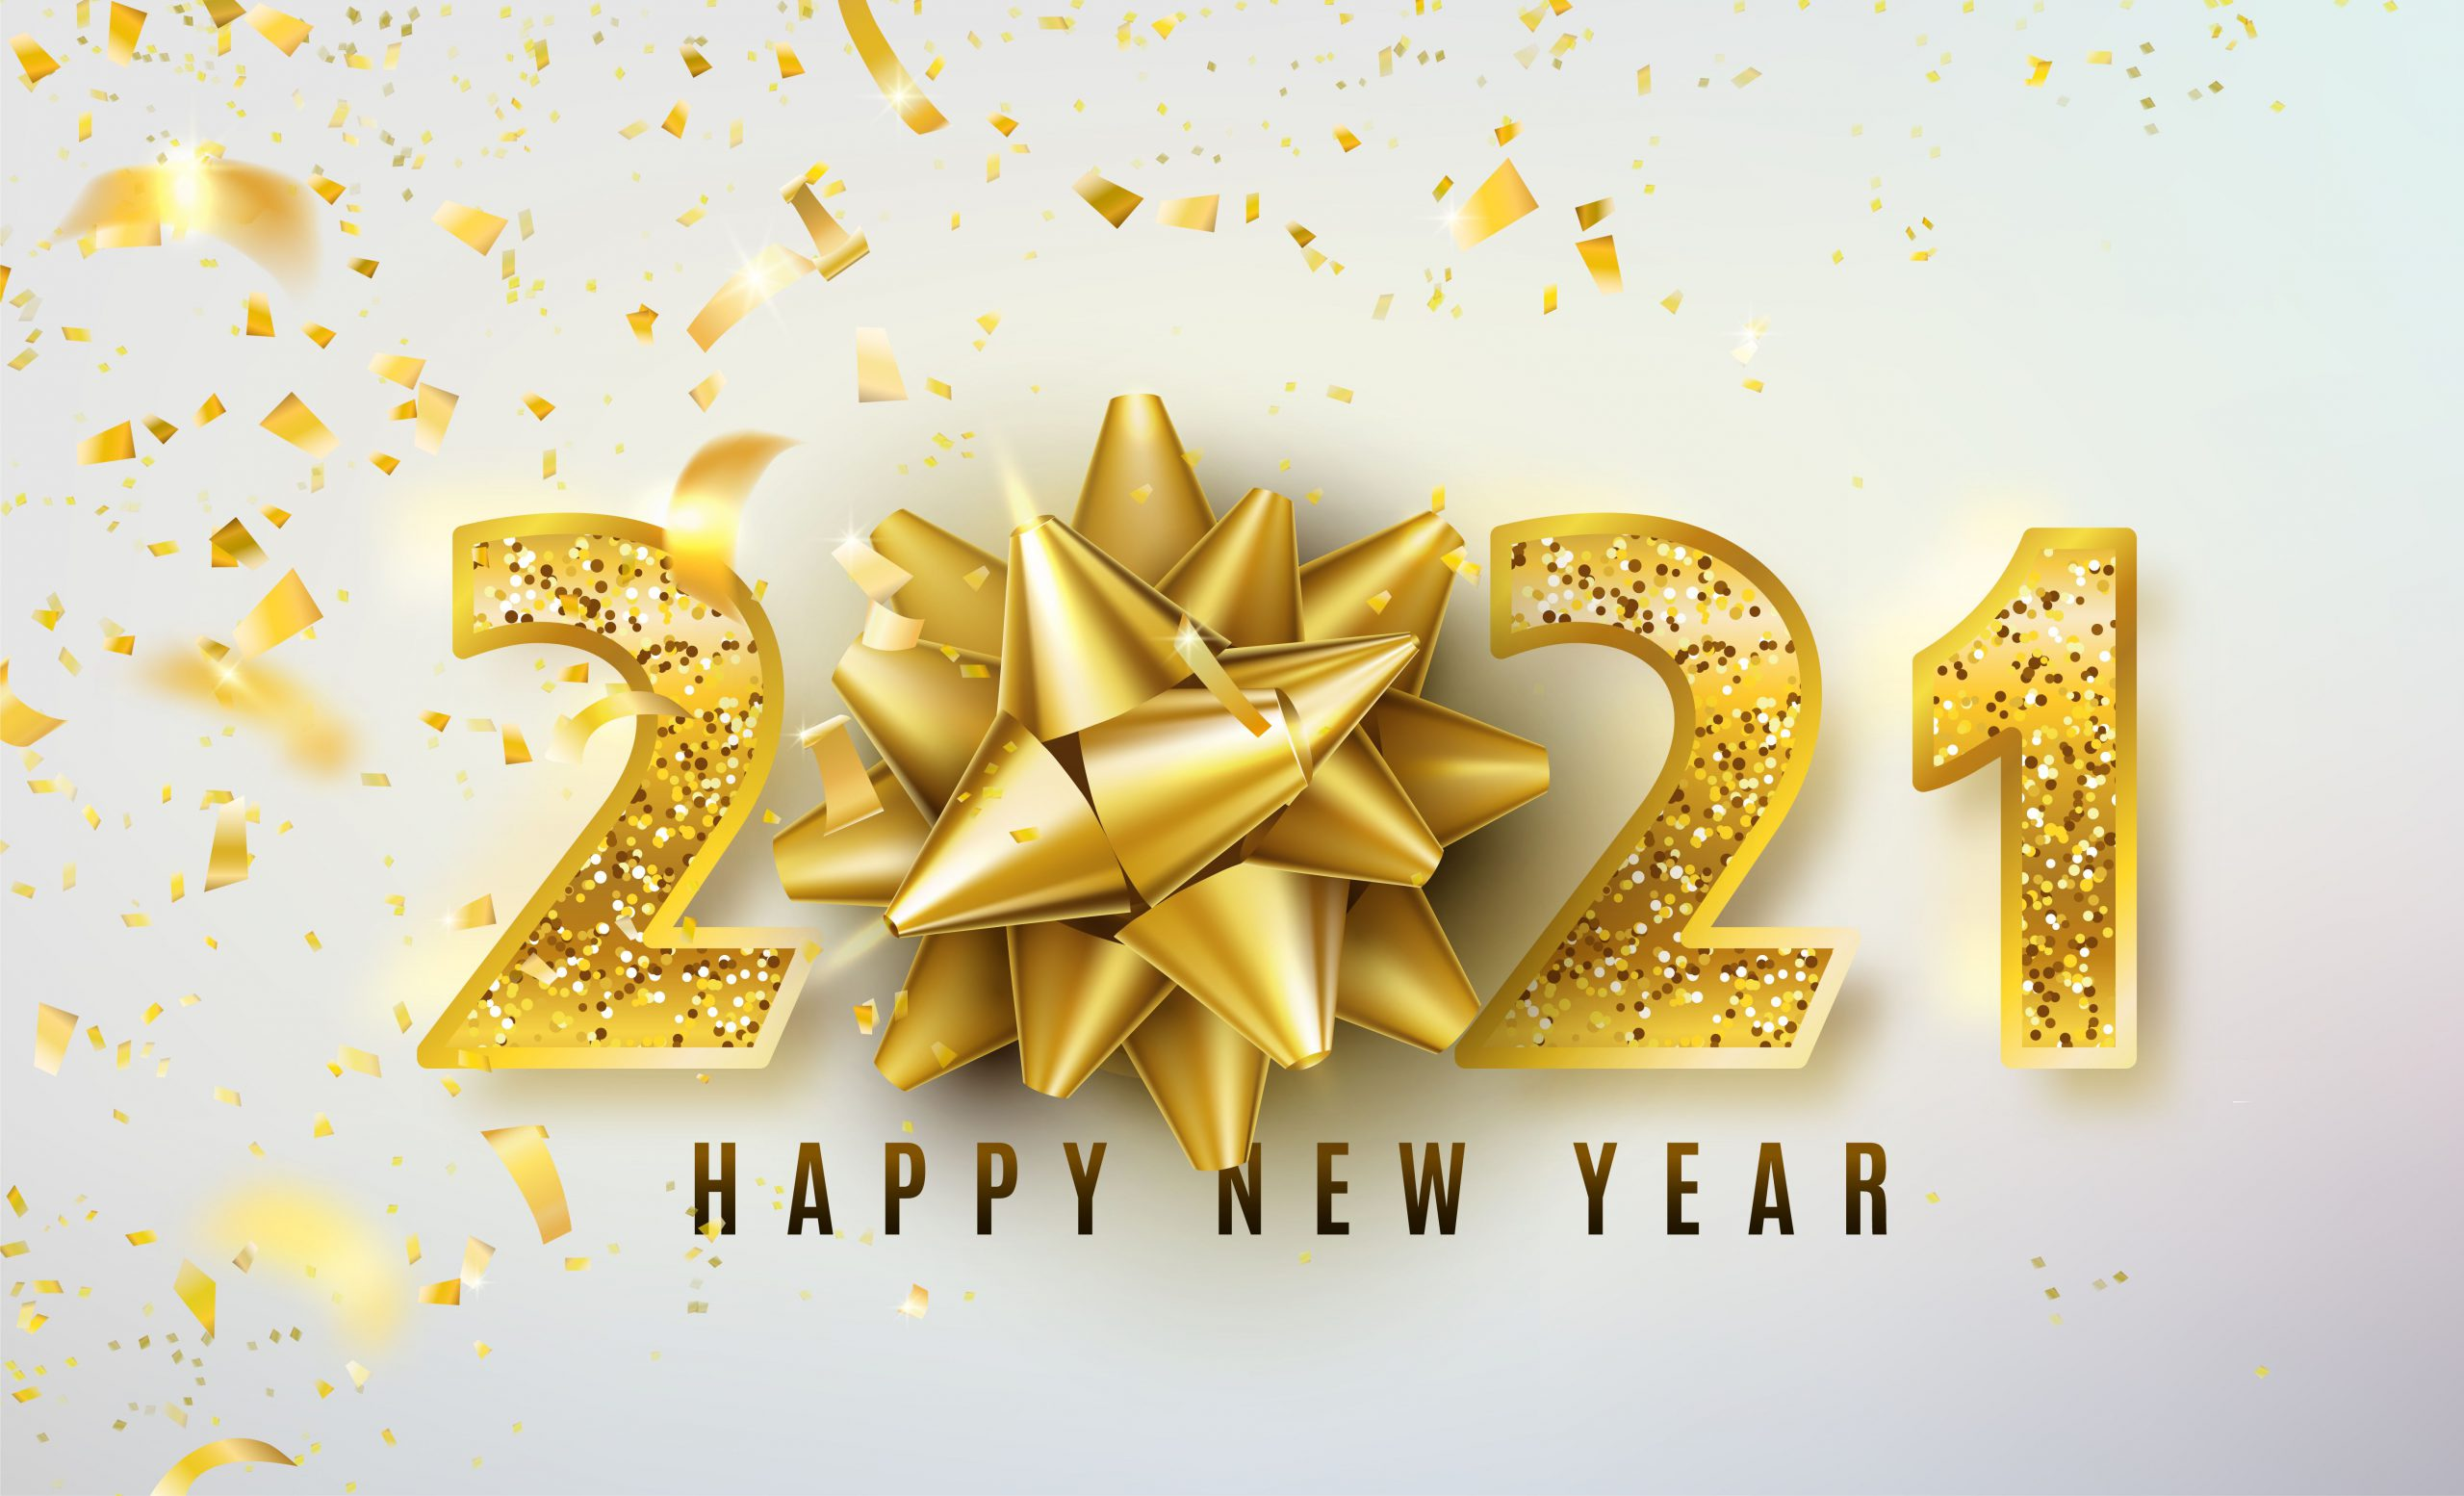 2021 Happy New Year vector background with golden gift bow, confetti, shiny glitter gold numbers. Christmas celebrate design. Festive premium concept template for holiday